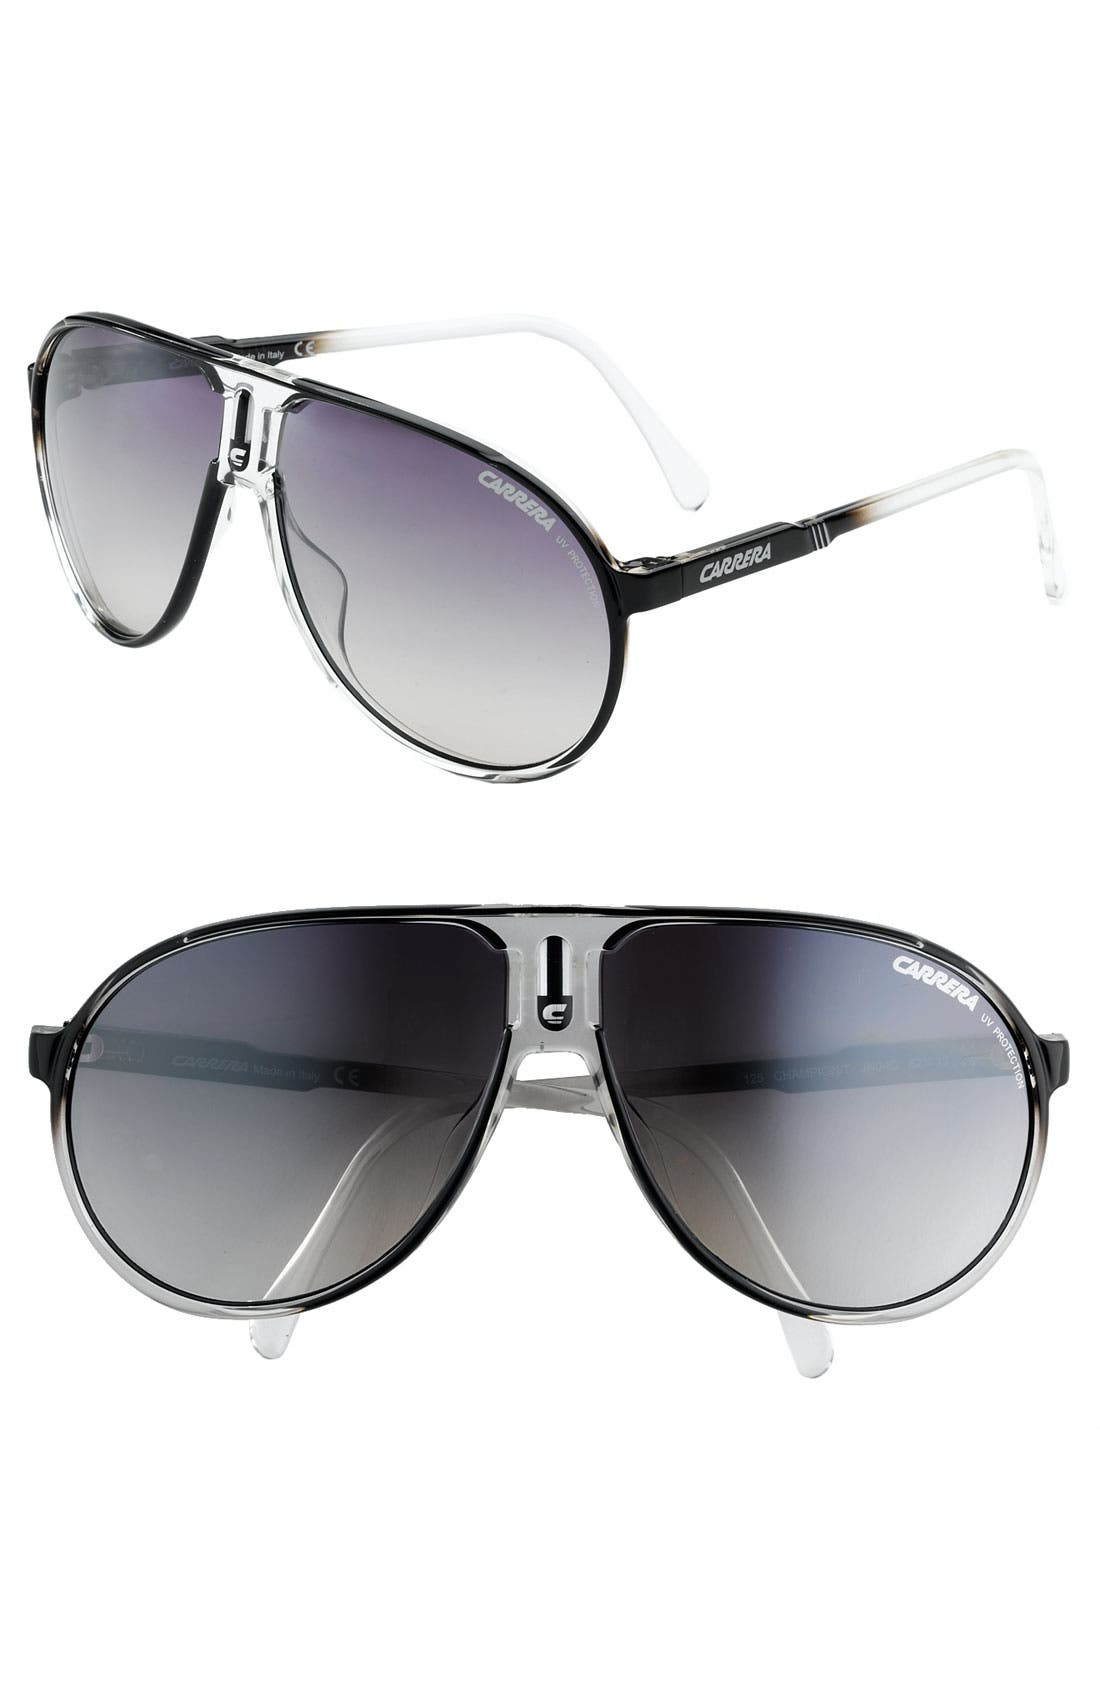 Alternate Image 1 Selected - Carrera Eyewear 'Champion' Aviator Sunglasses